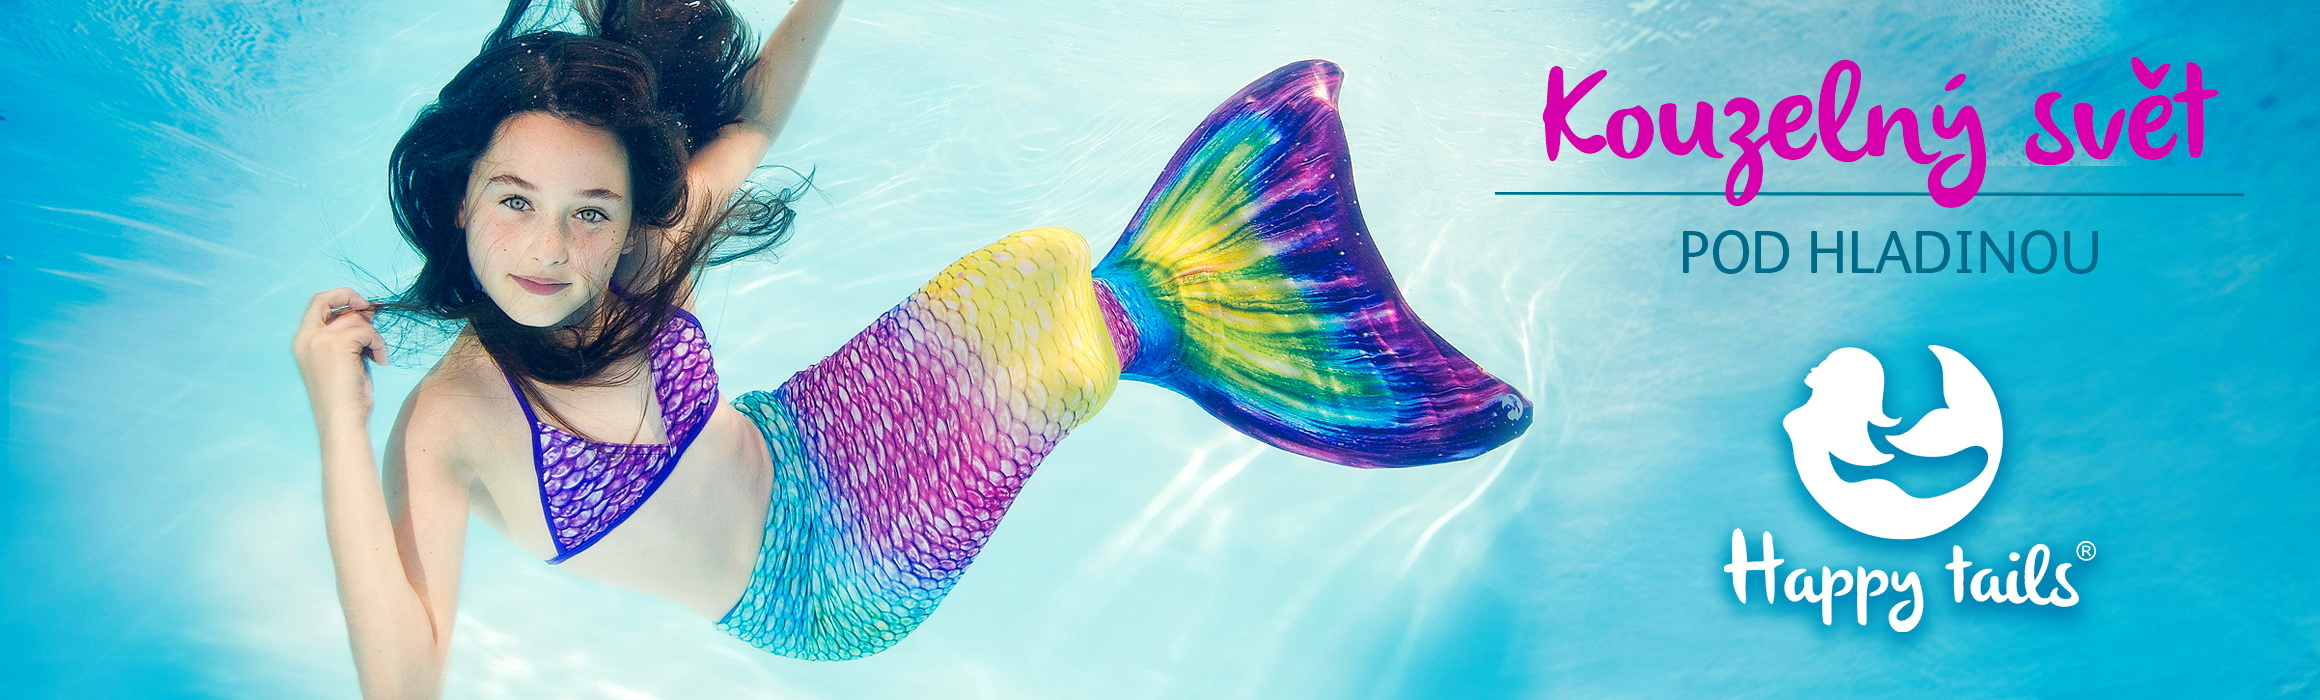 mermaid_image_summer